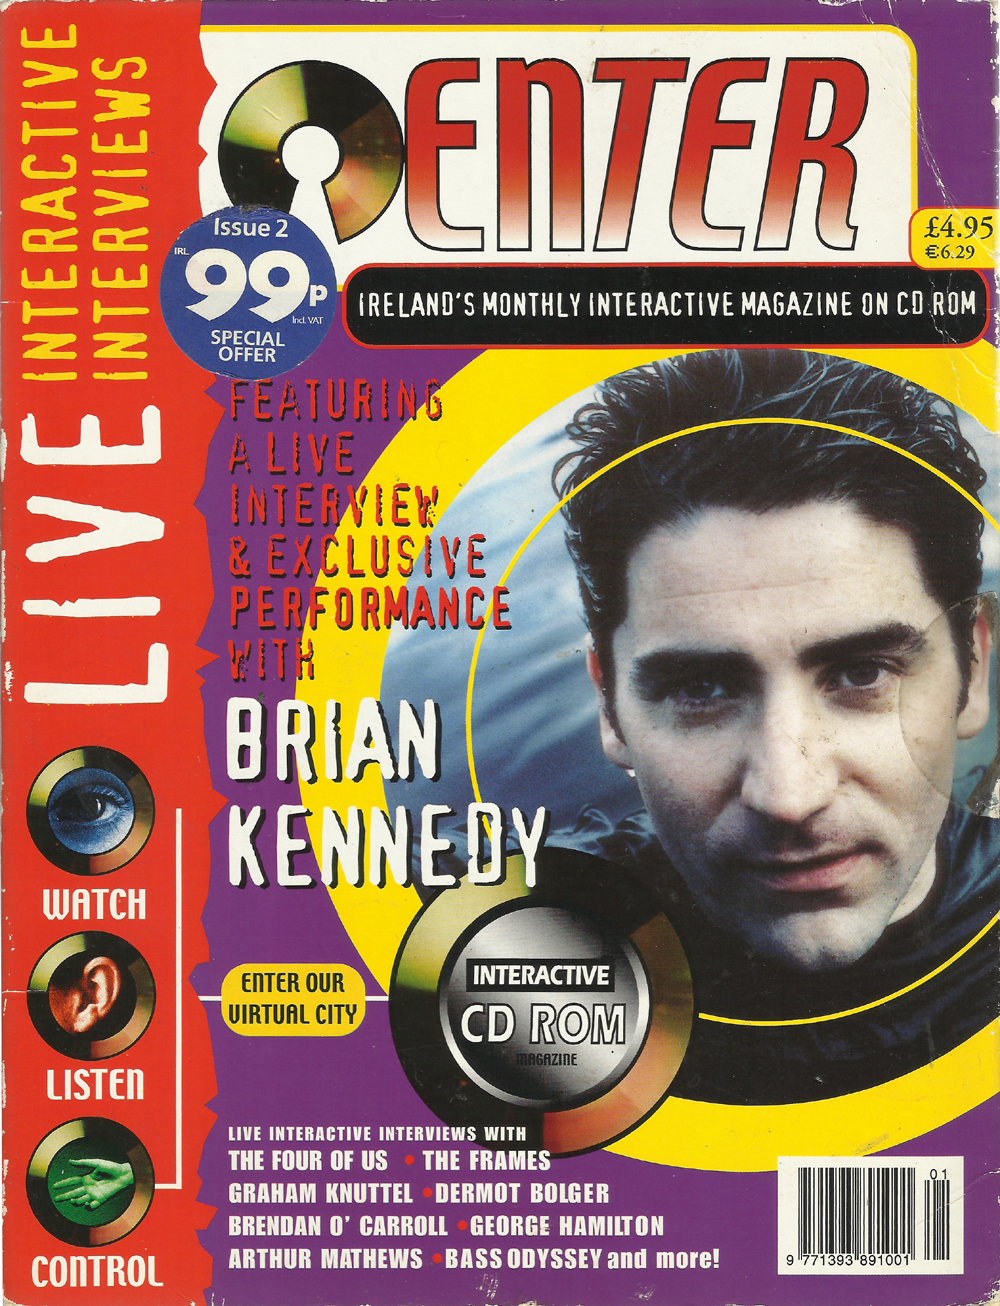 Ireland's Monthly Interactive Magazine on CD Rom -Enter-2000